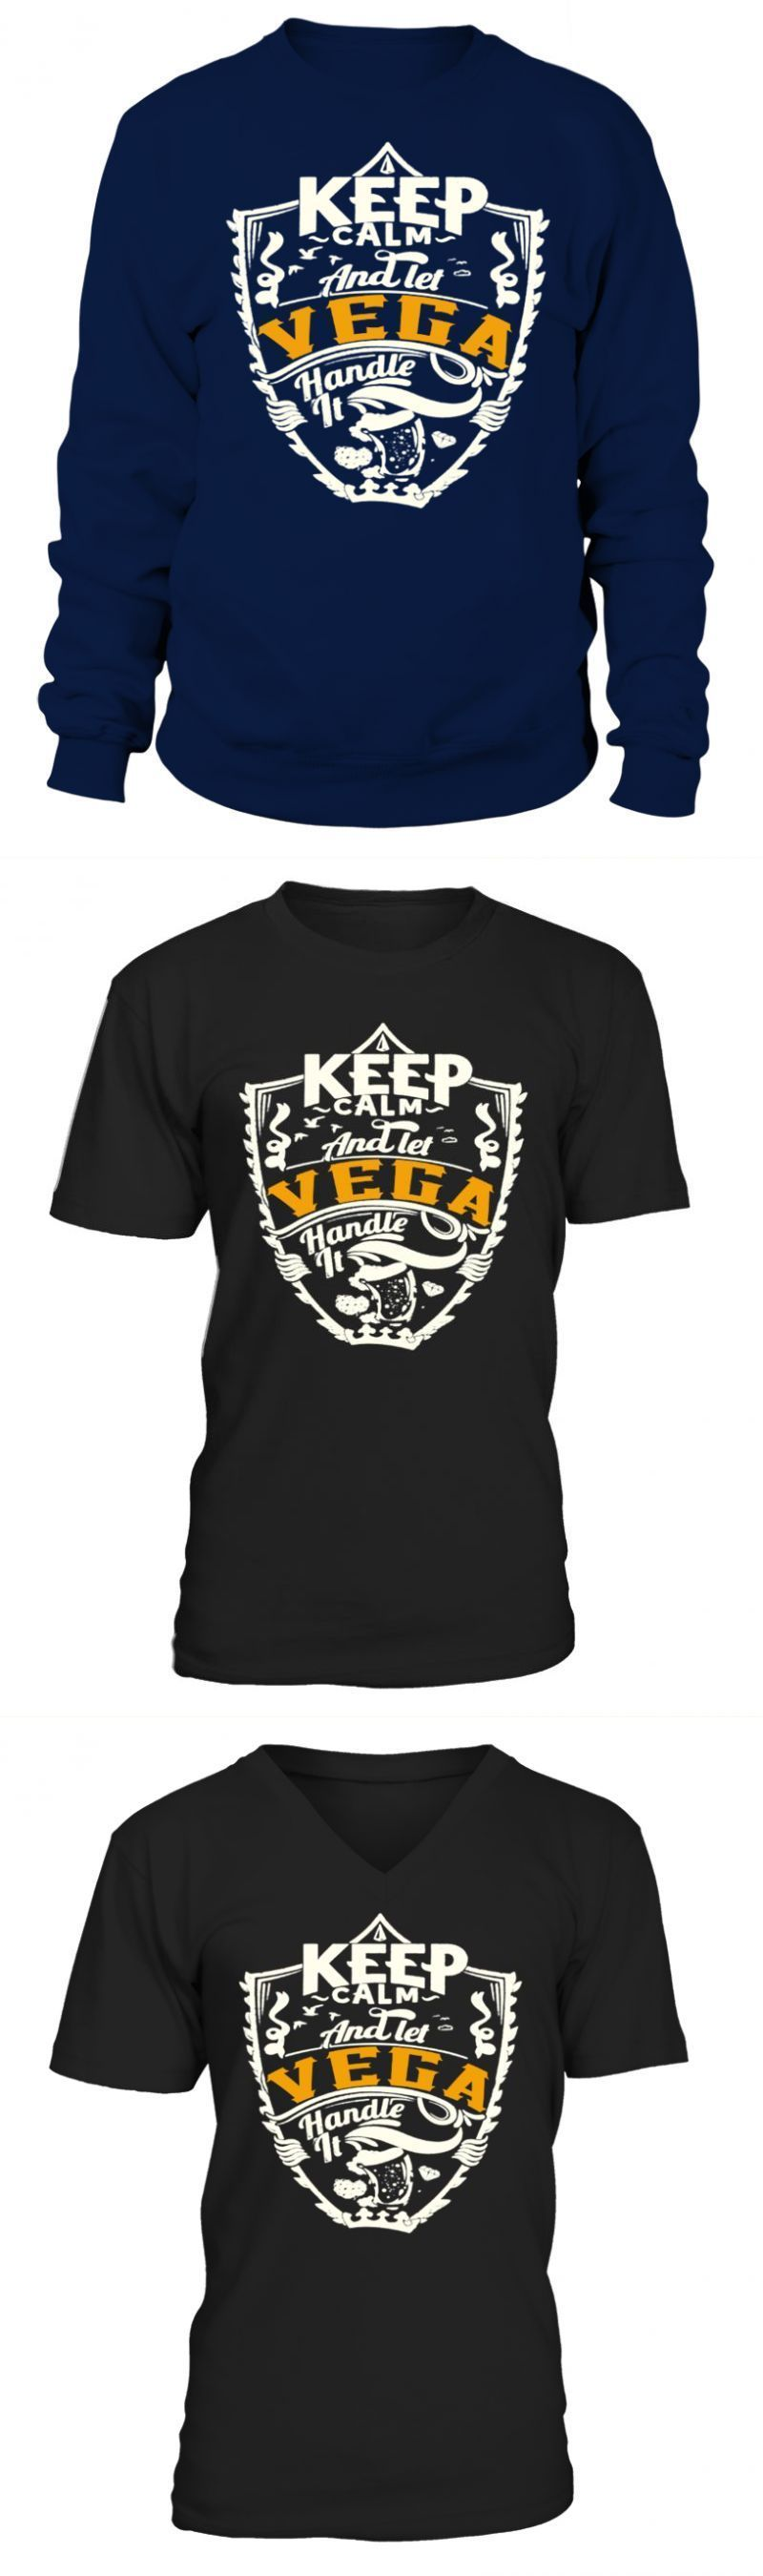 Cute Volleyball T Shirt Designs Vega Volleyball Tournament T Shirt Designs Cute Volleyb Badminton T Shirts Volleyball T Shirt Designs T Shirt Design Template